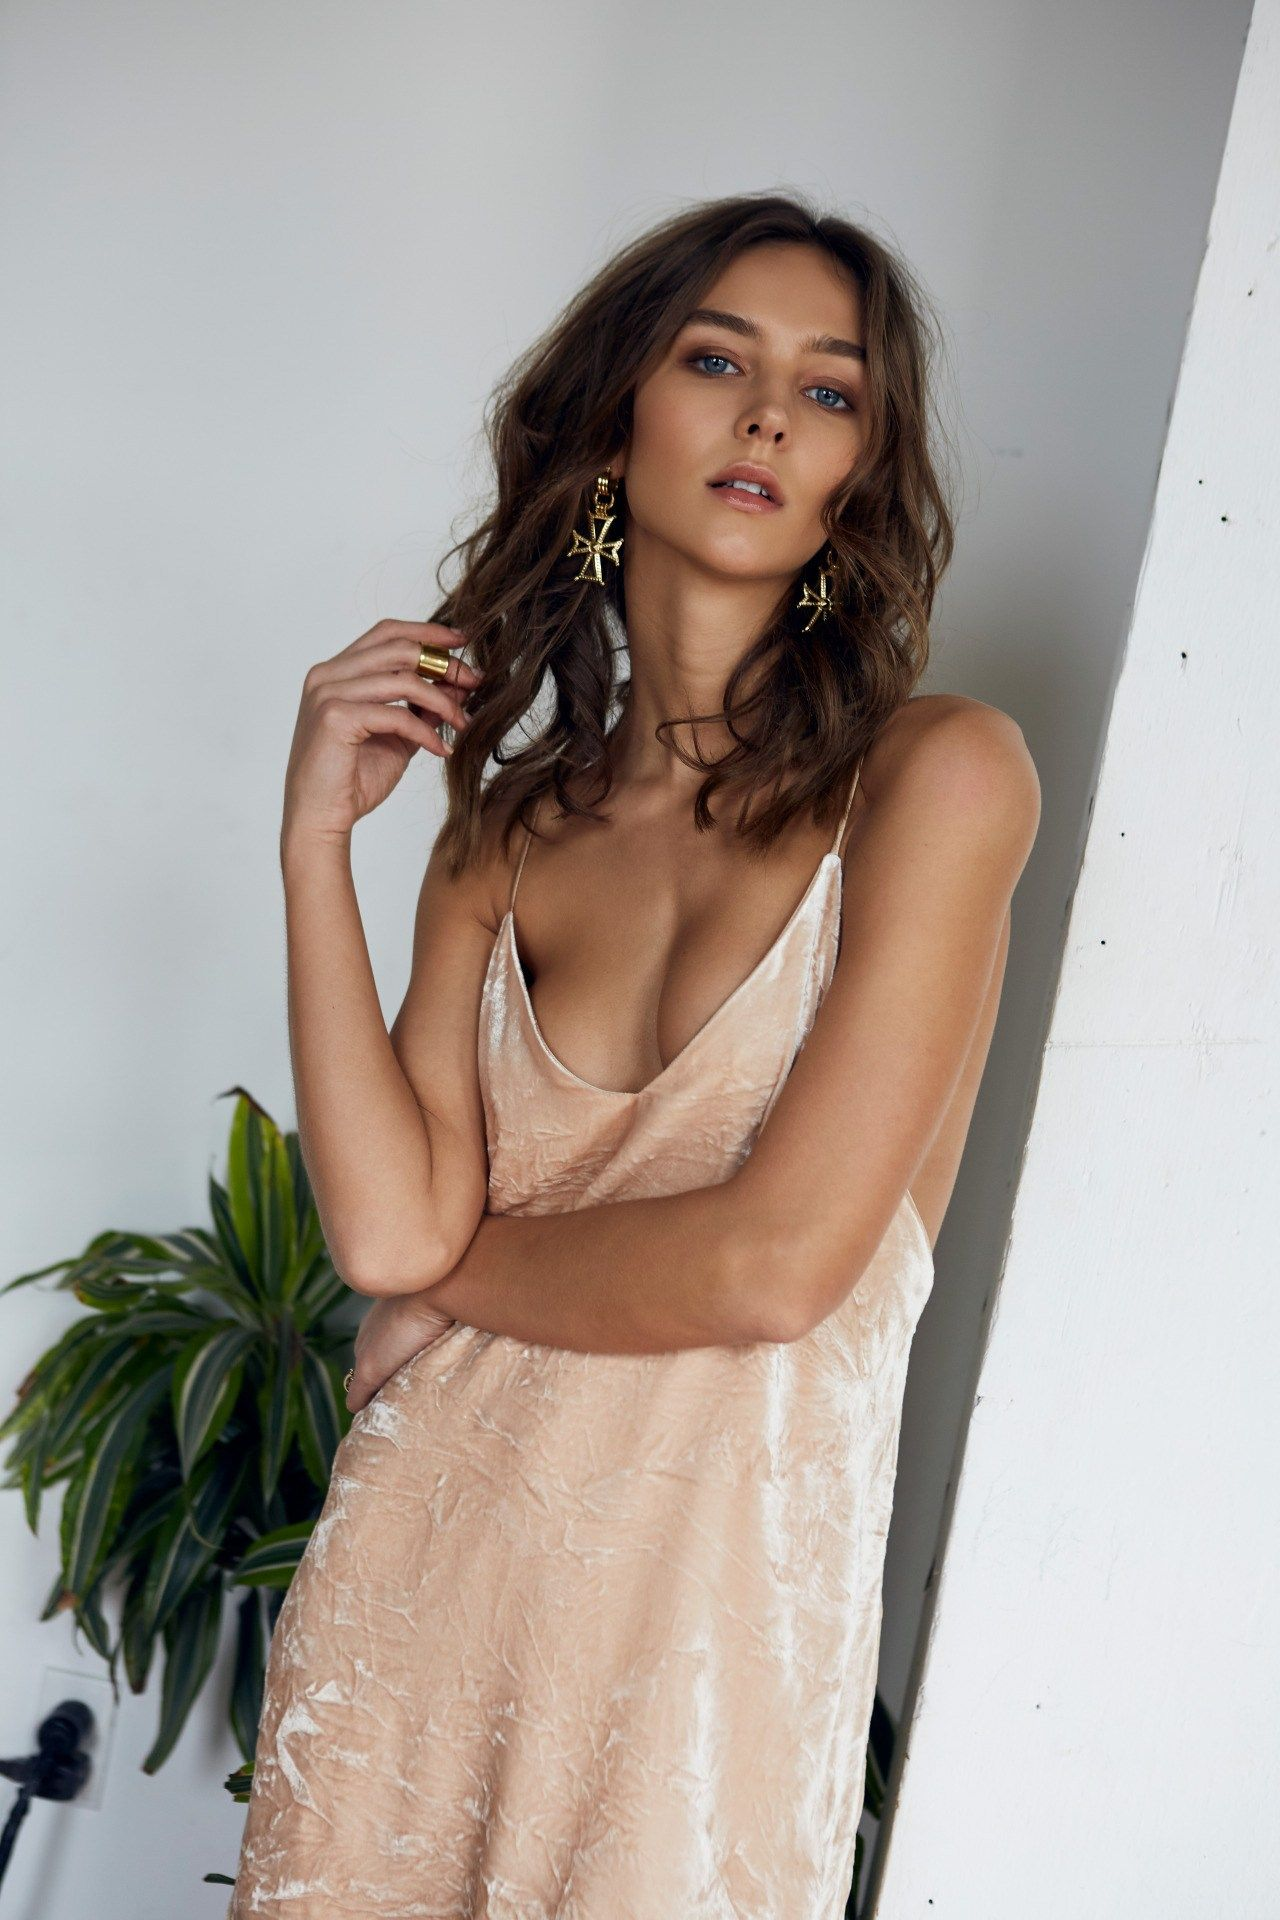 A huge collection of nude and topless Rachel Cook pictures in HQ - The Fappening!